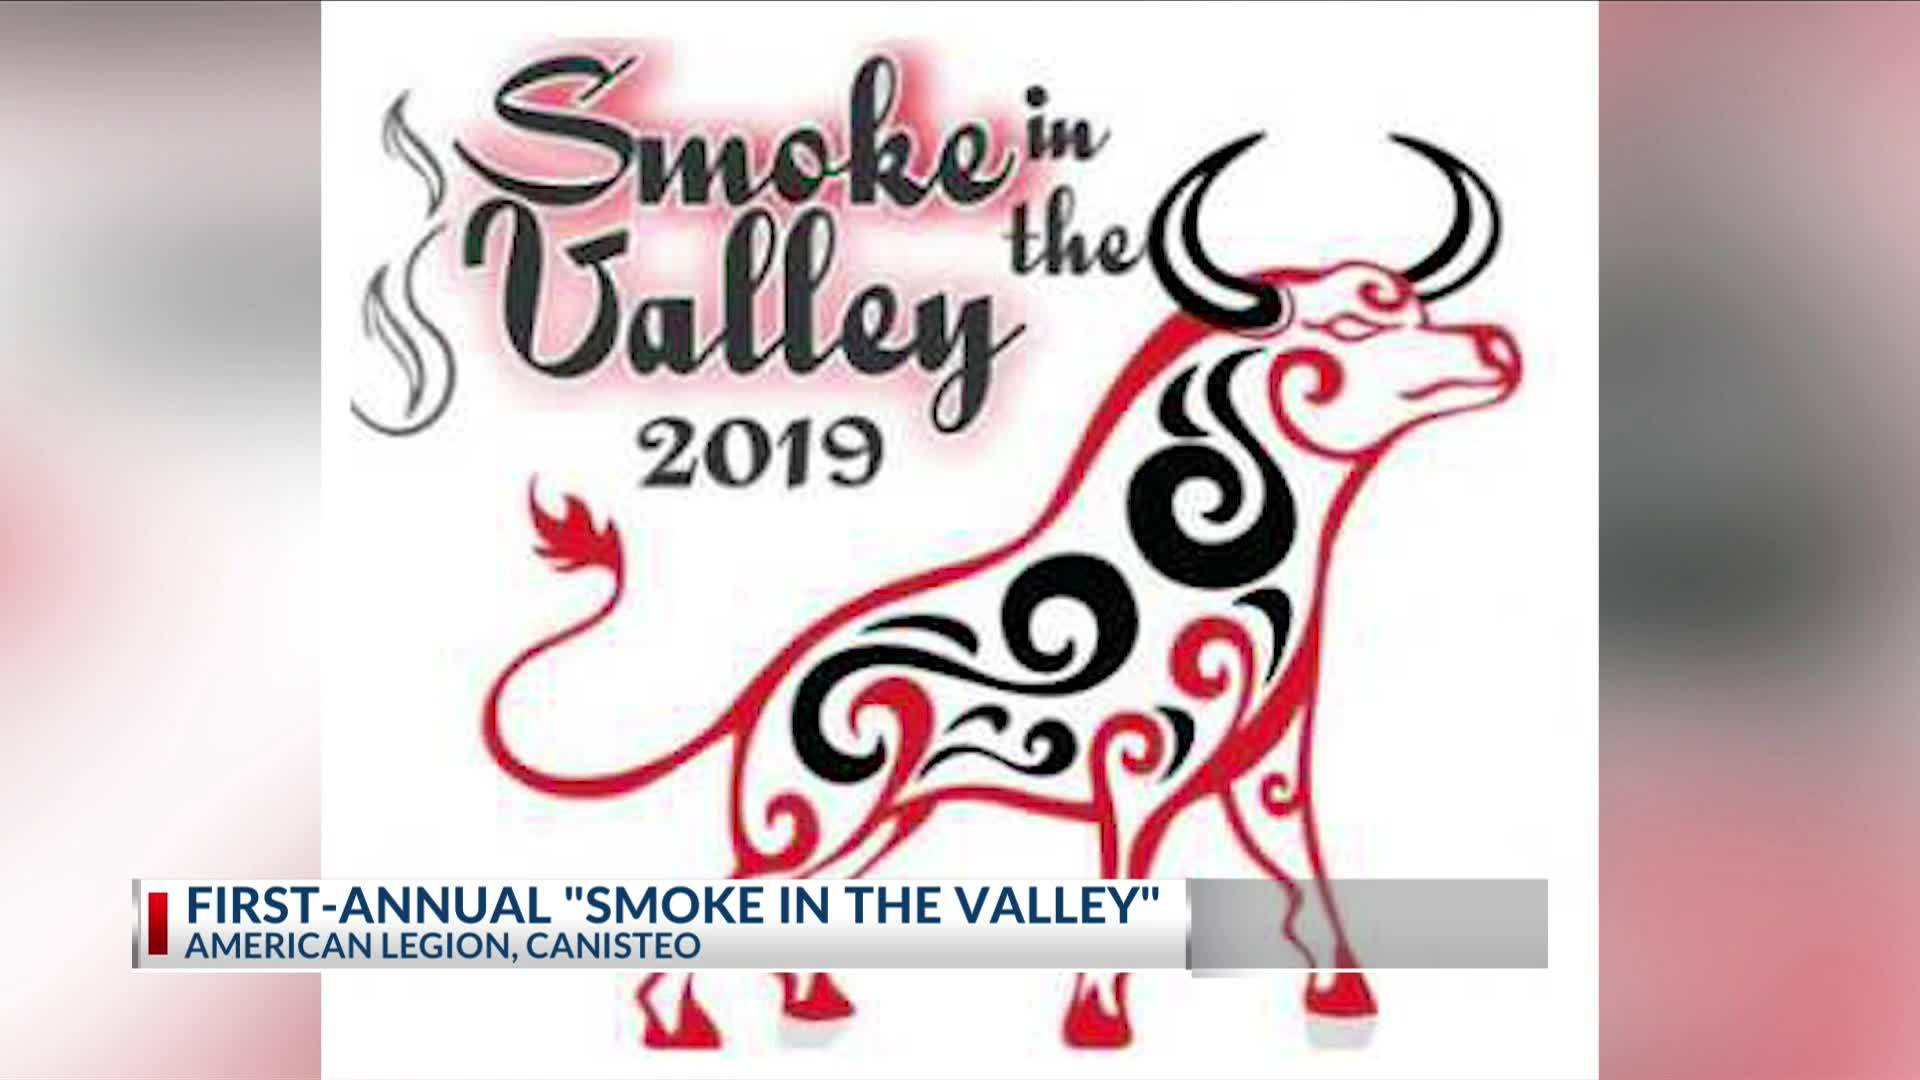 smoke_in_the_valley_2019_4_20190617031727